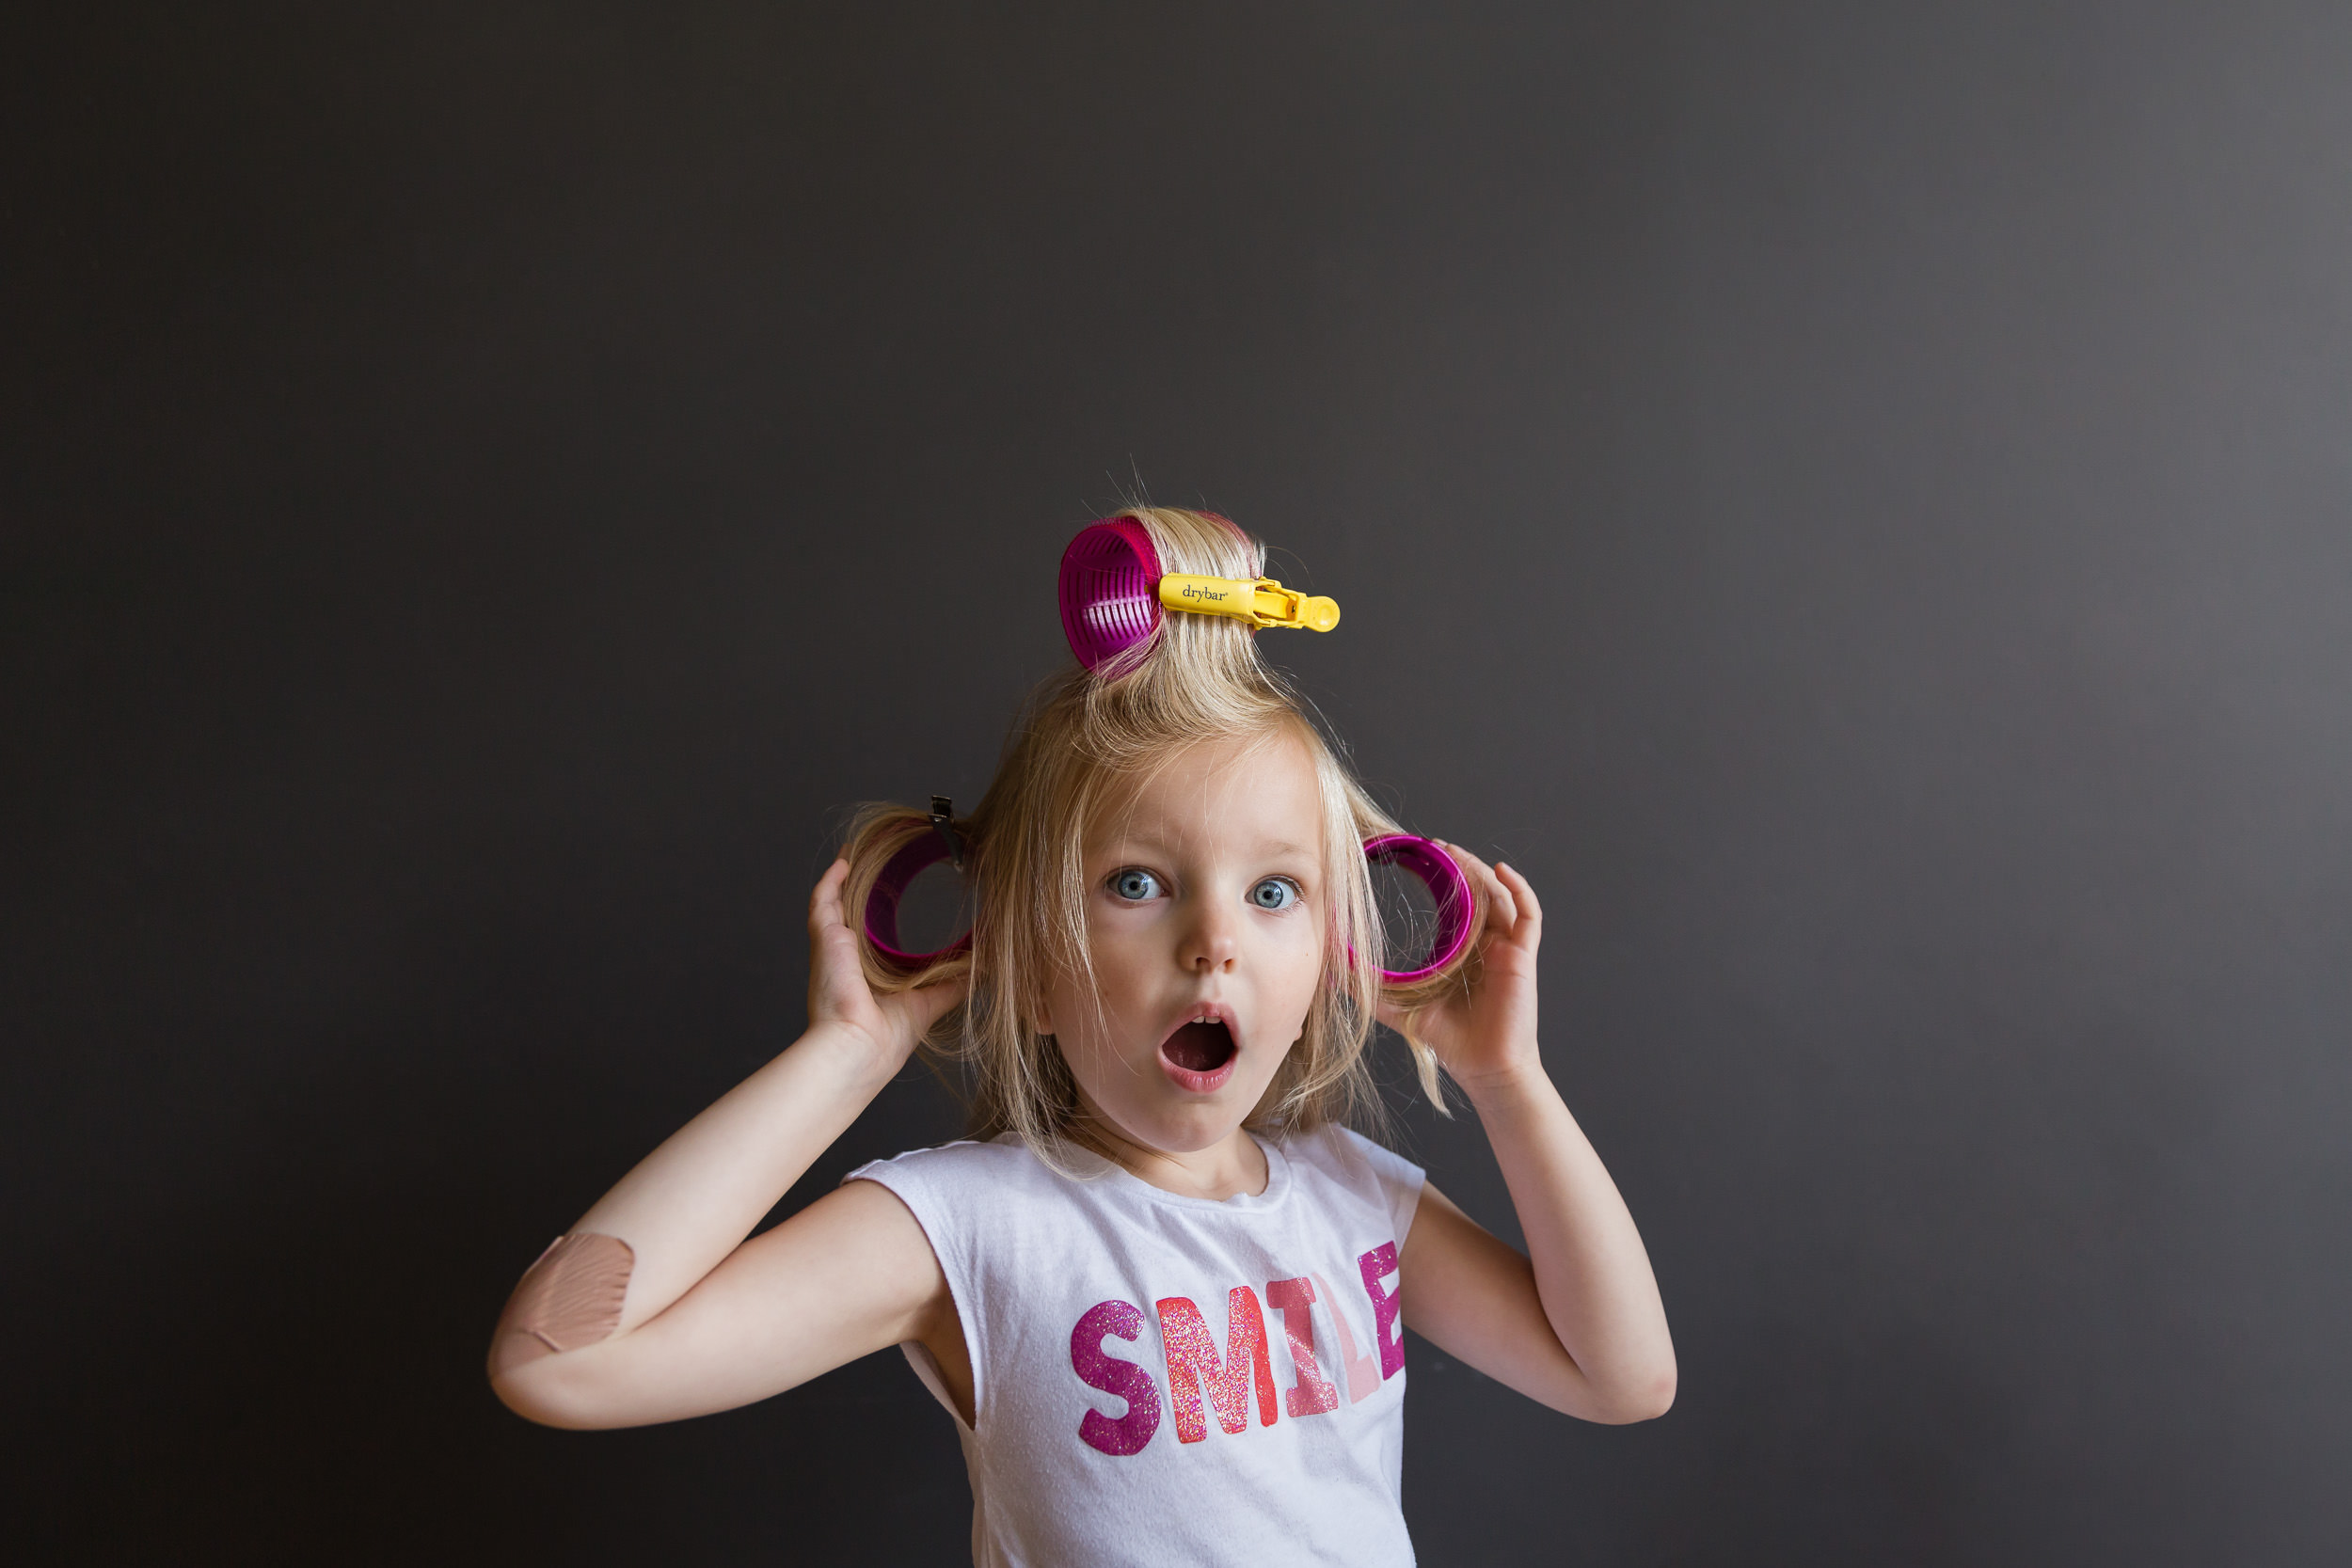 girl_in_smile_shirt_with_pink_rollers_in_blond_hair_in_Personal_portfolio_by_rebecca_hunnicutt_farren.jpg